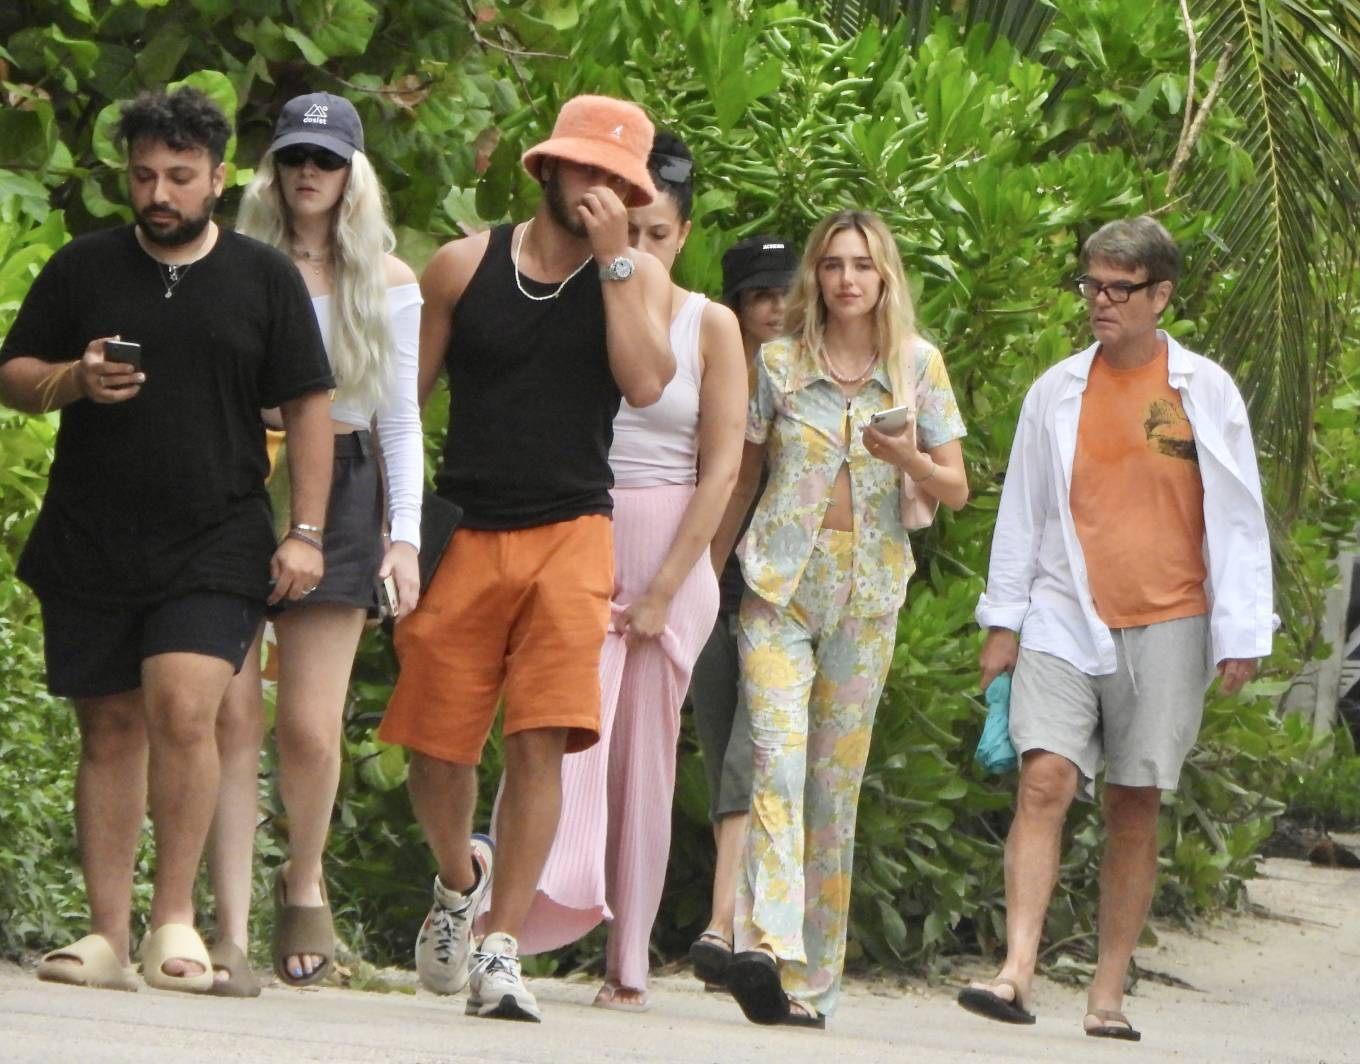 Delilah Belle Hamlin - Seen with a group of friends in Tulum Mexico